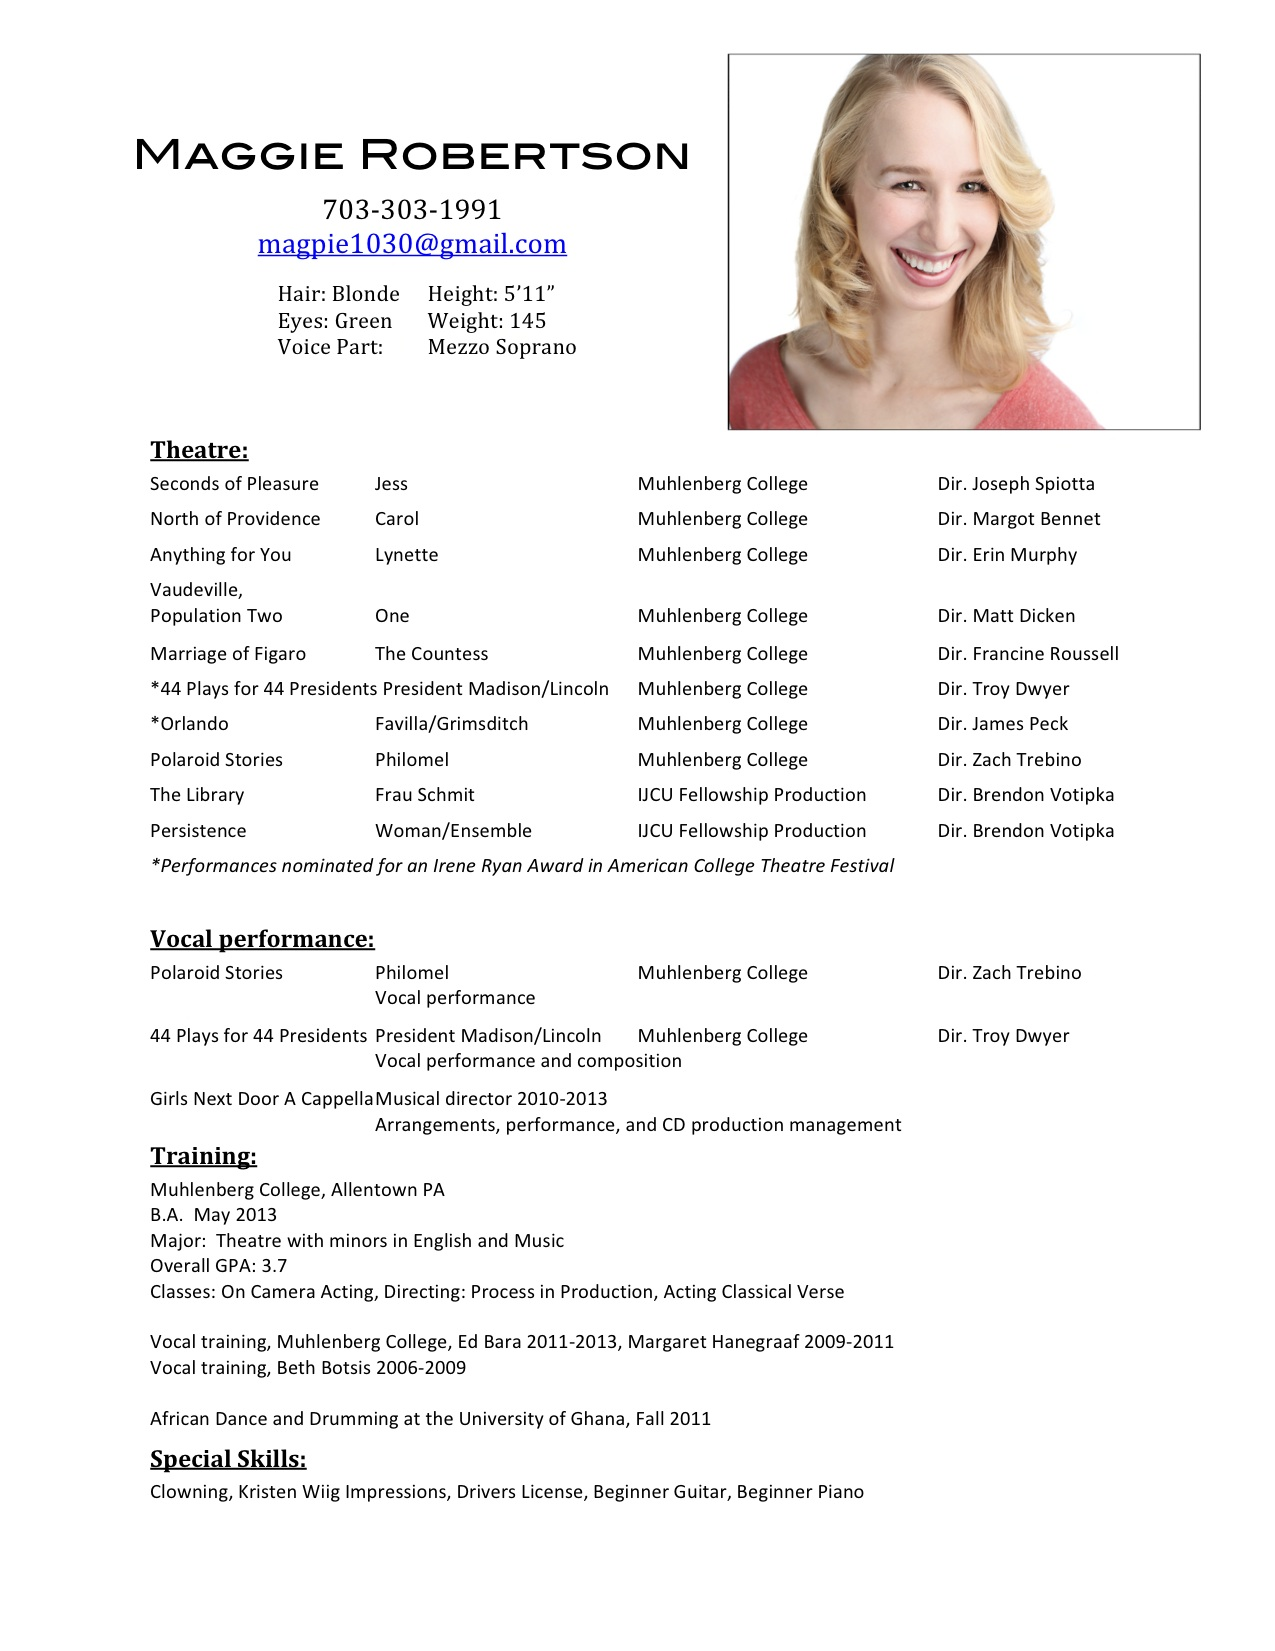 sample resume for phlebotomy student resume samples sample resume for phlebotomy student sample student resume and tips resume sample plus template phlebotomy